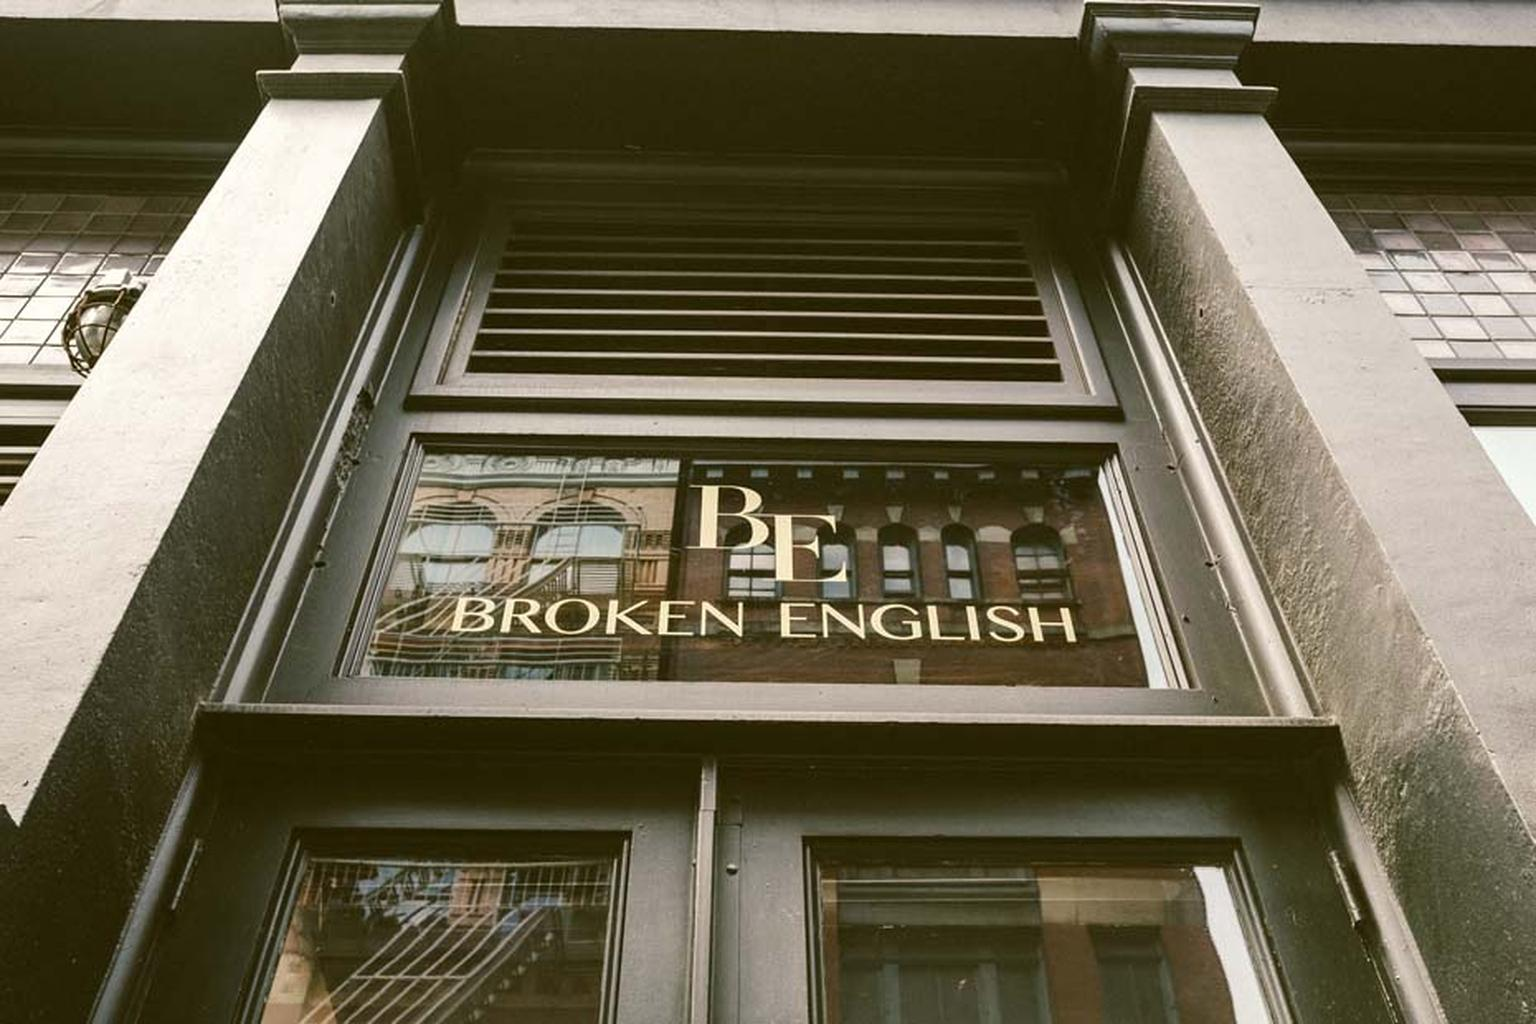 Yossi Harari, Nicholas Lieou and Pippa Small are among the brands exclusive to Broken English in New York.